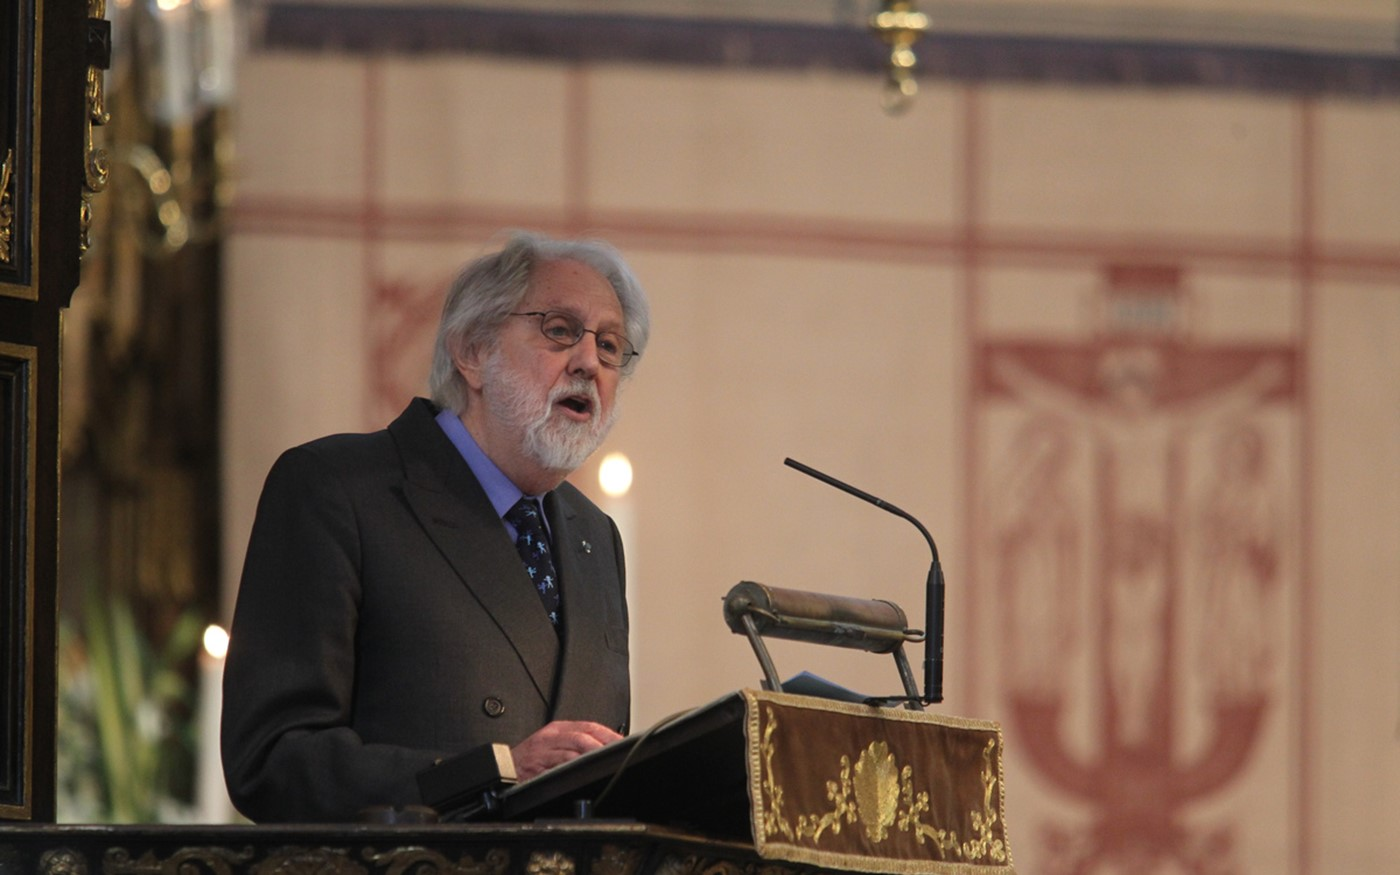 The address from Lord Puttnam